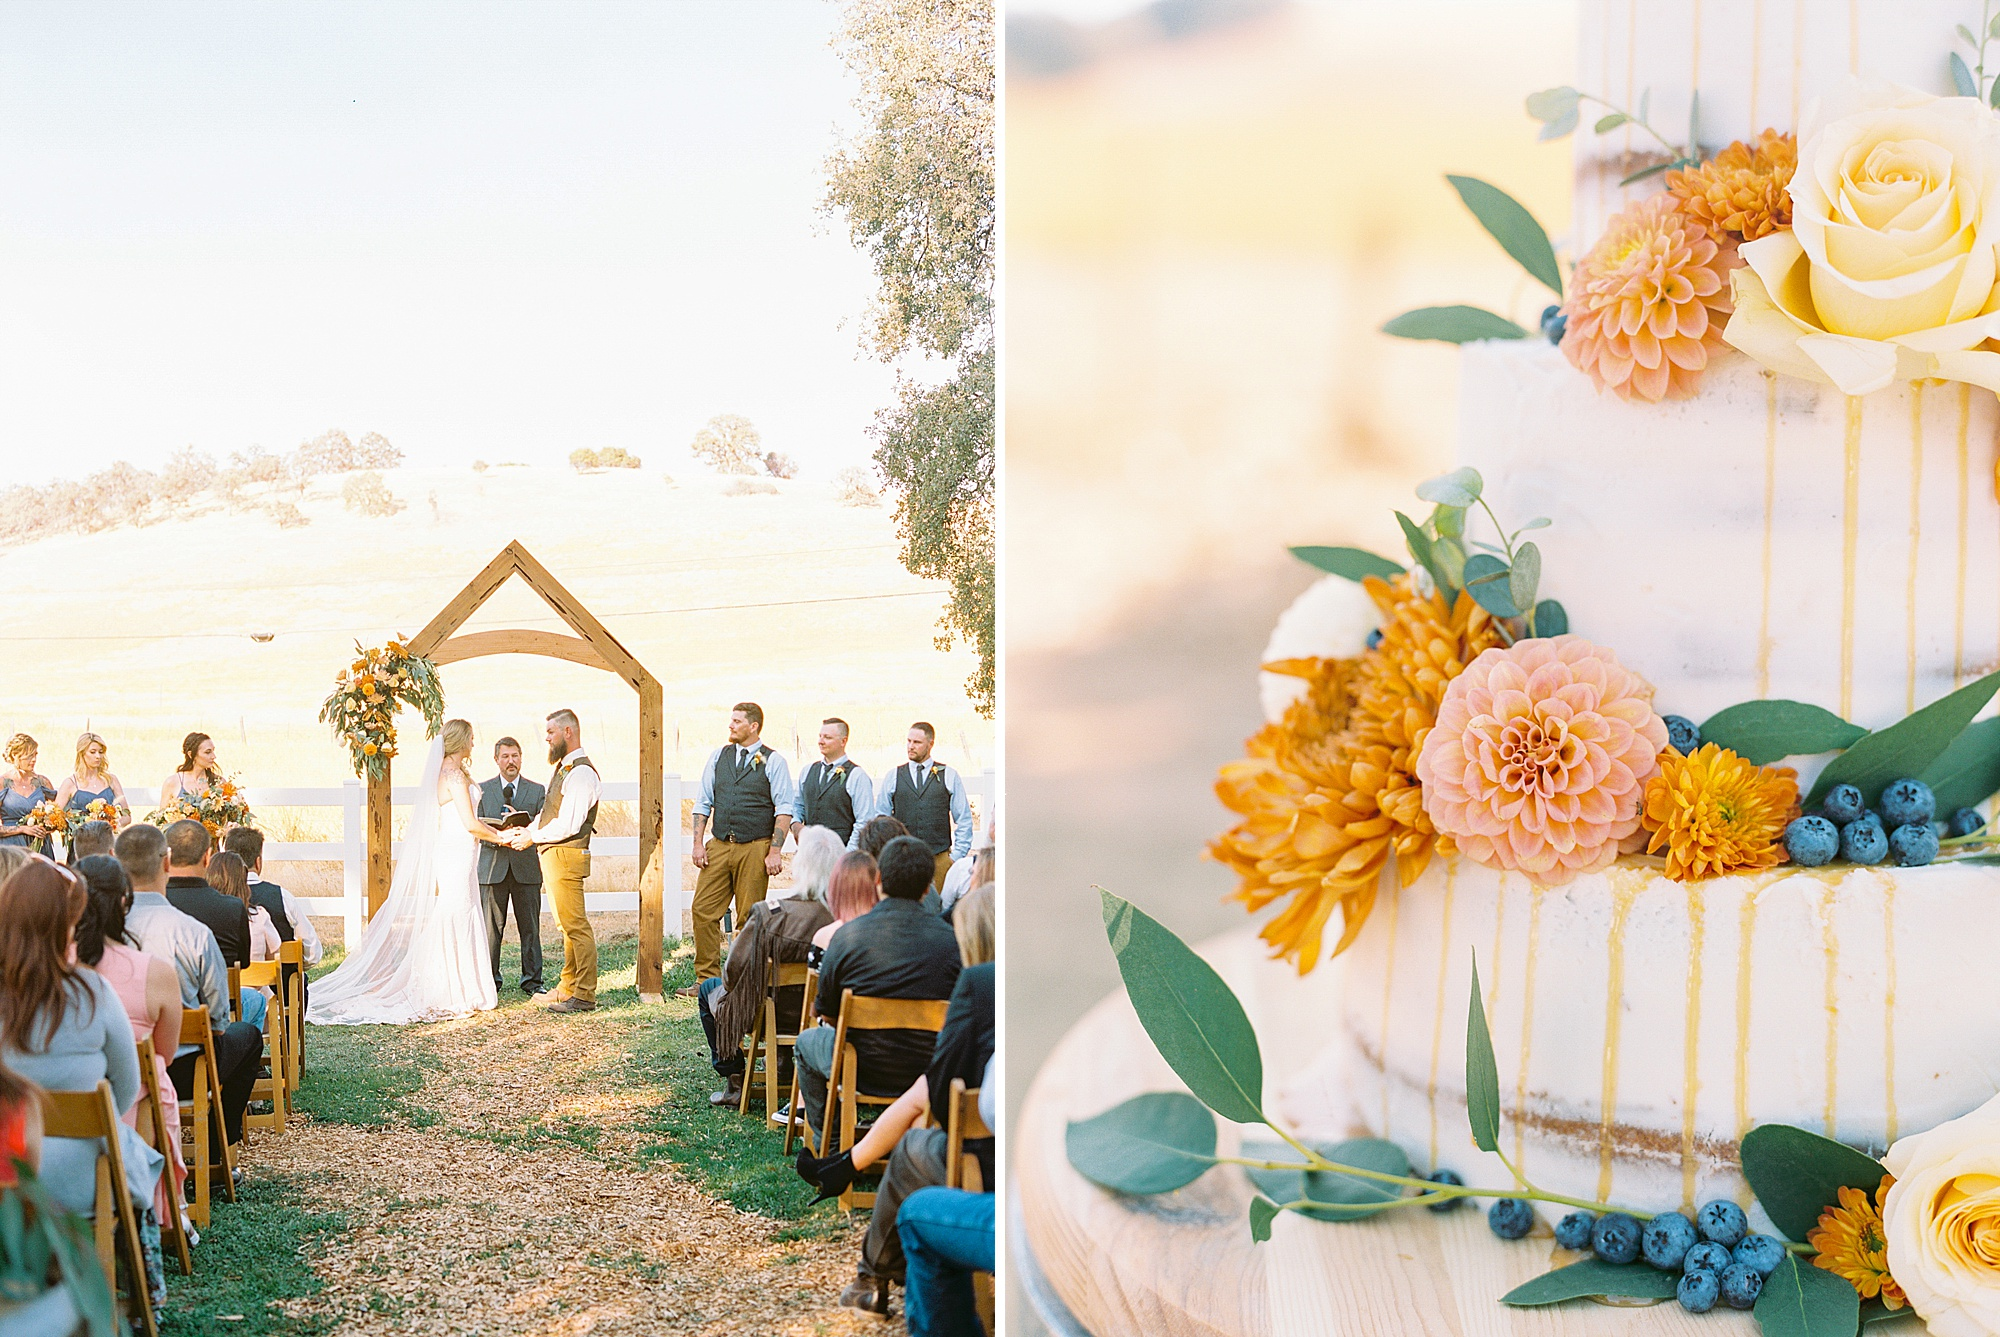 Sonora Wedding Photographer - Tiffany and Jesse - Ashley Baumgartner - Private Estate Summer Wedding_0111.jpg